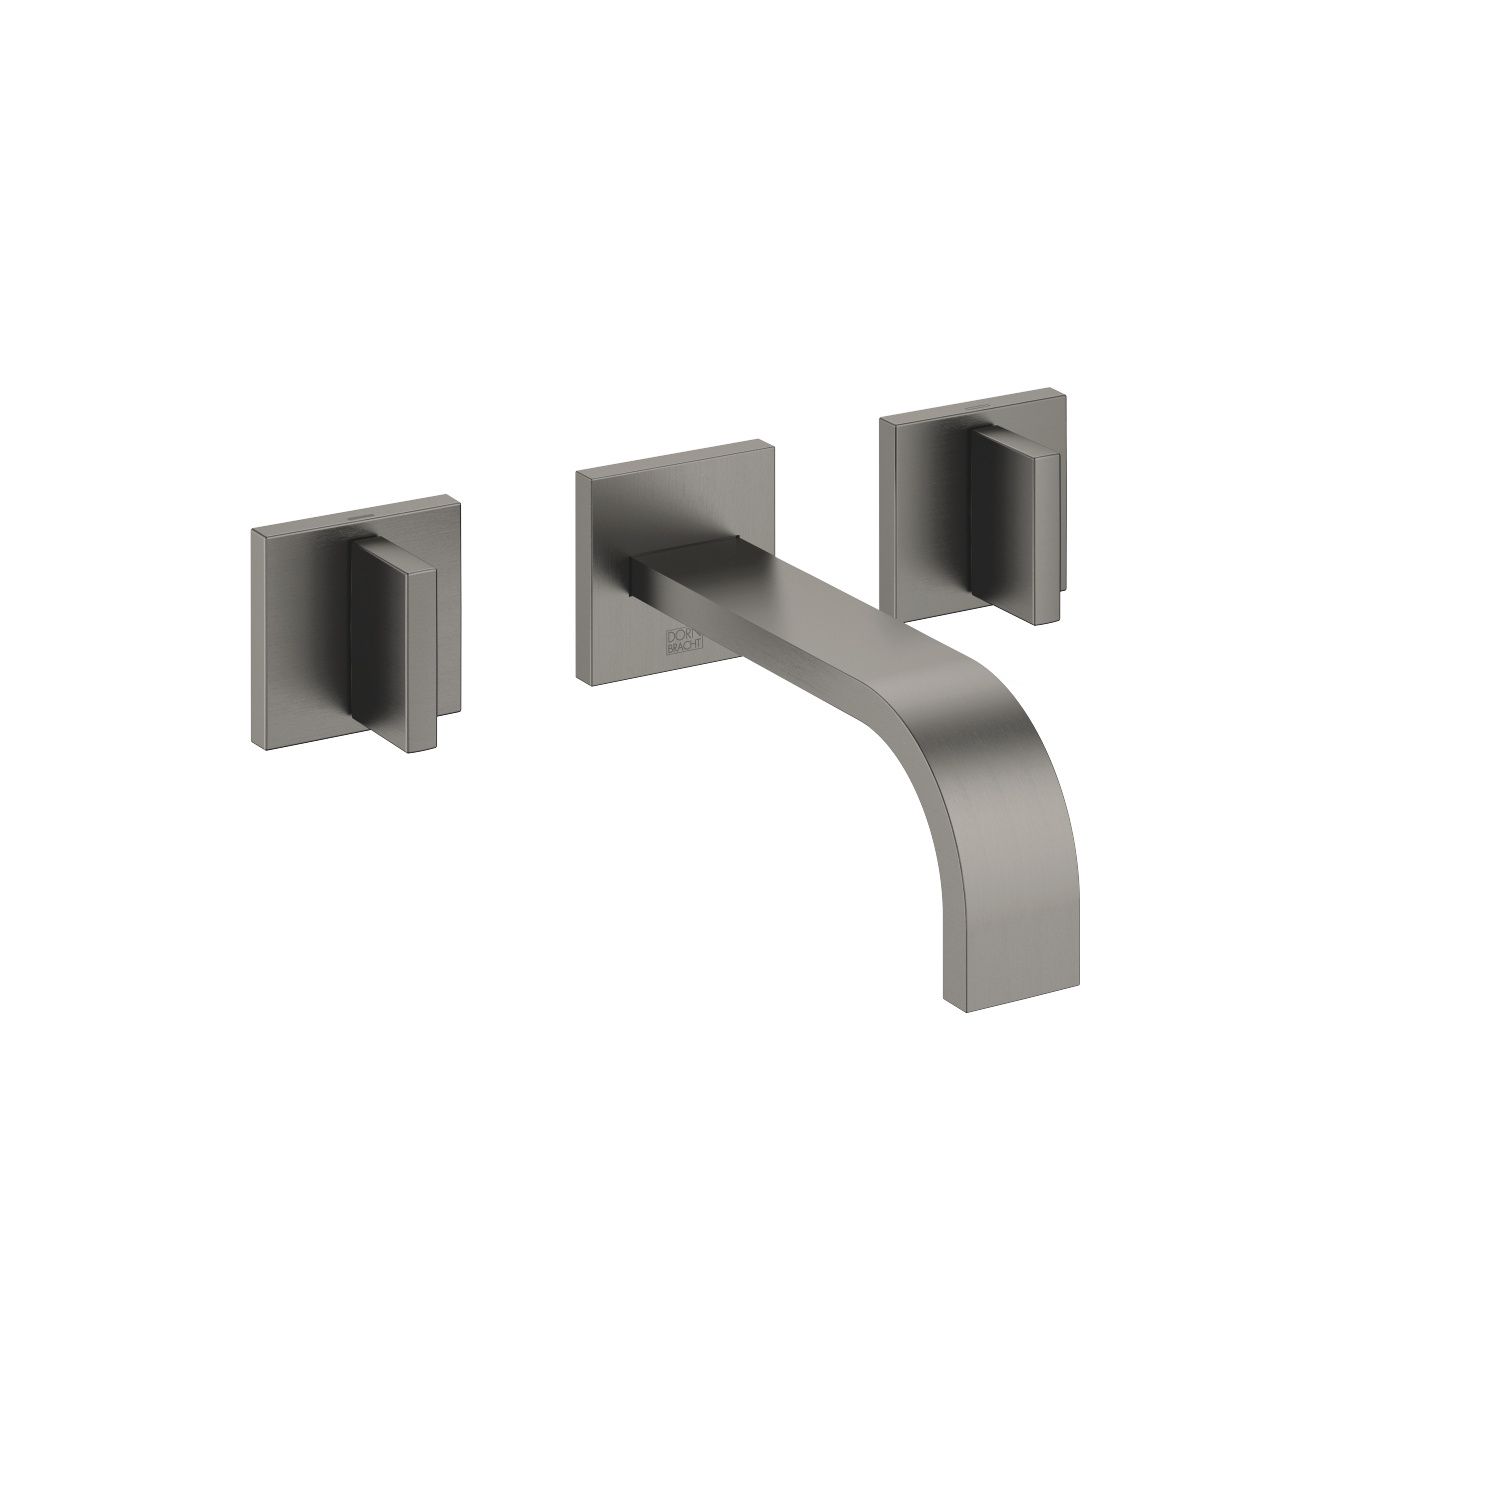 Wall-mounted basin mixer without pop-up waste - Dark Platinum matt